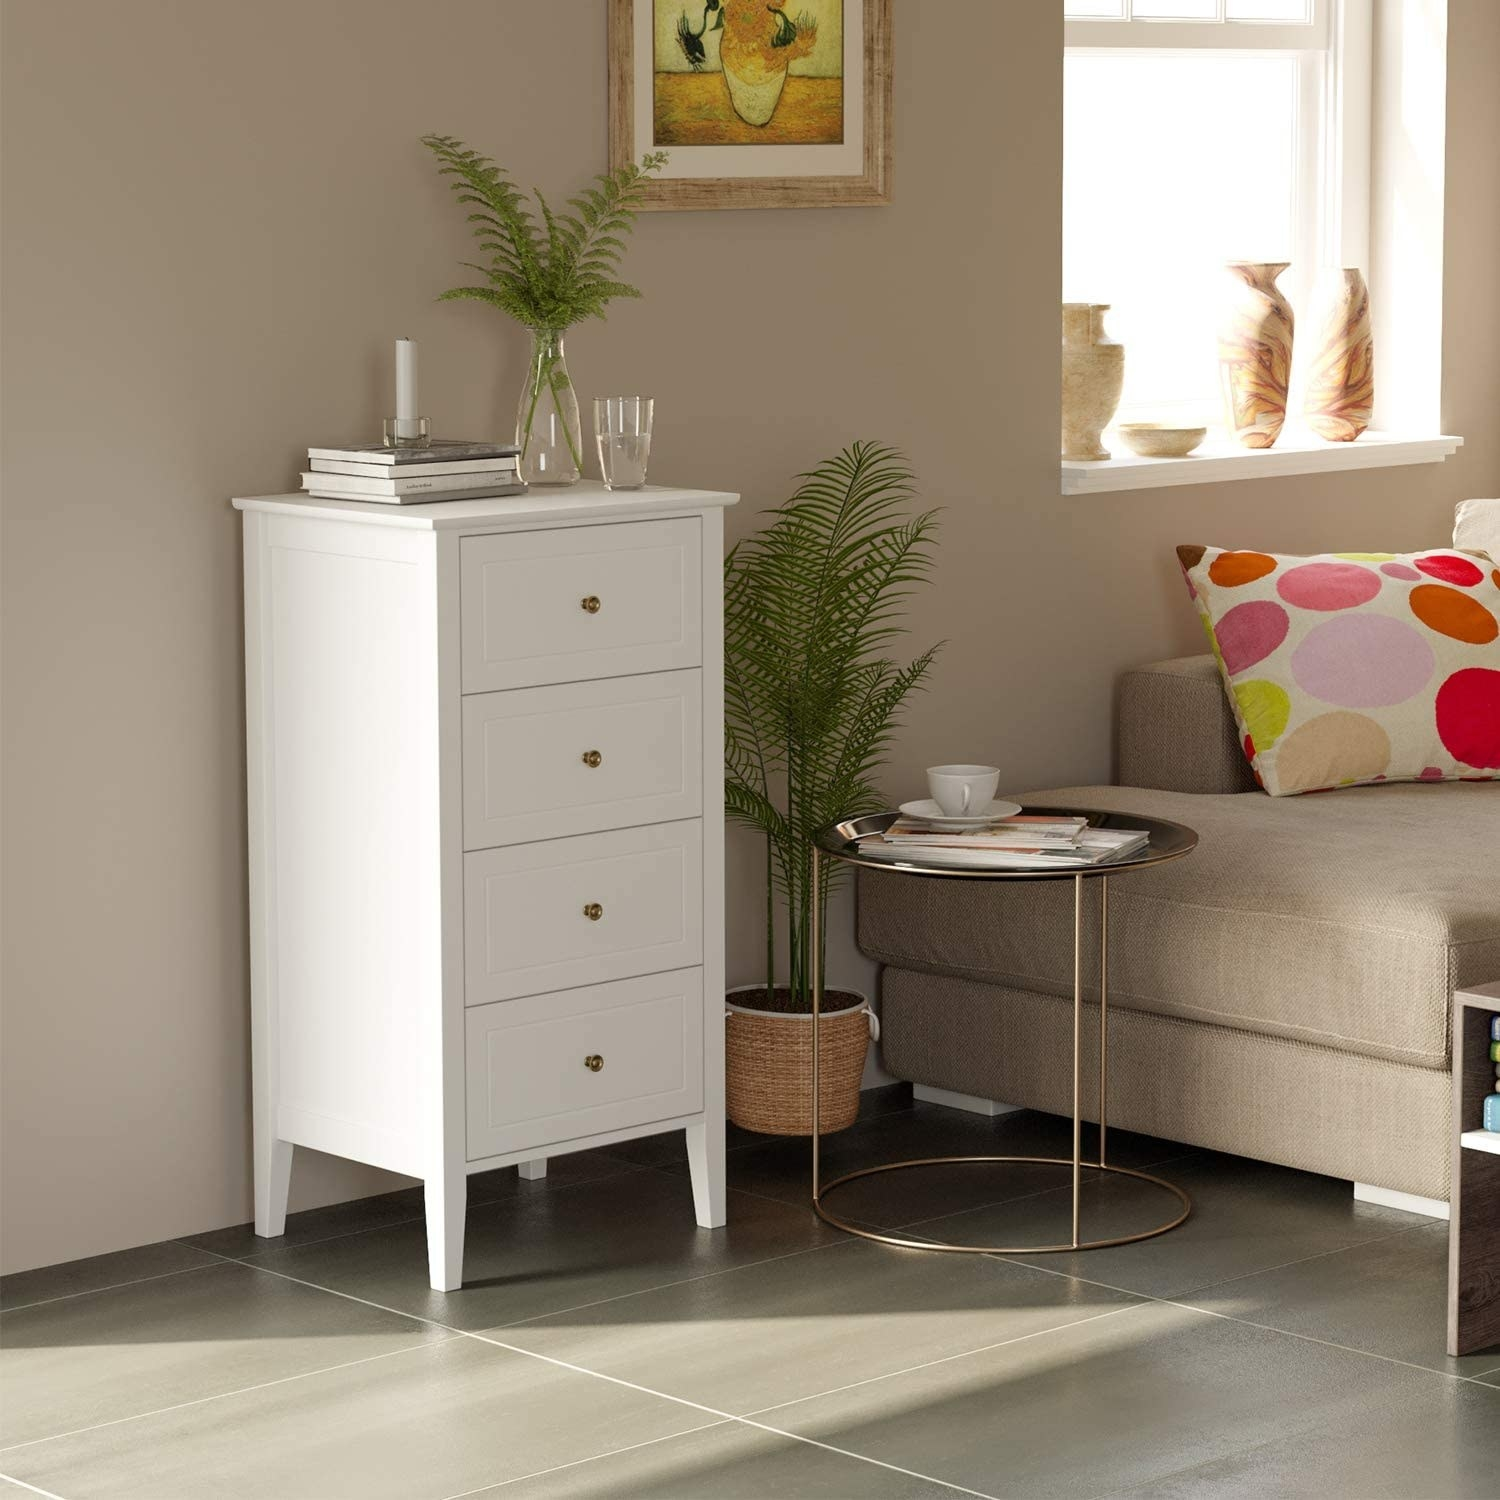 the white dresser in a bedroom